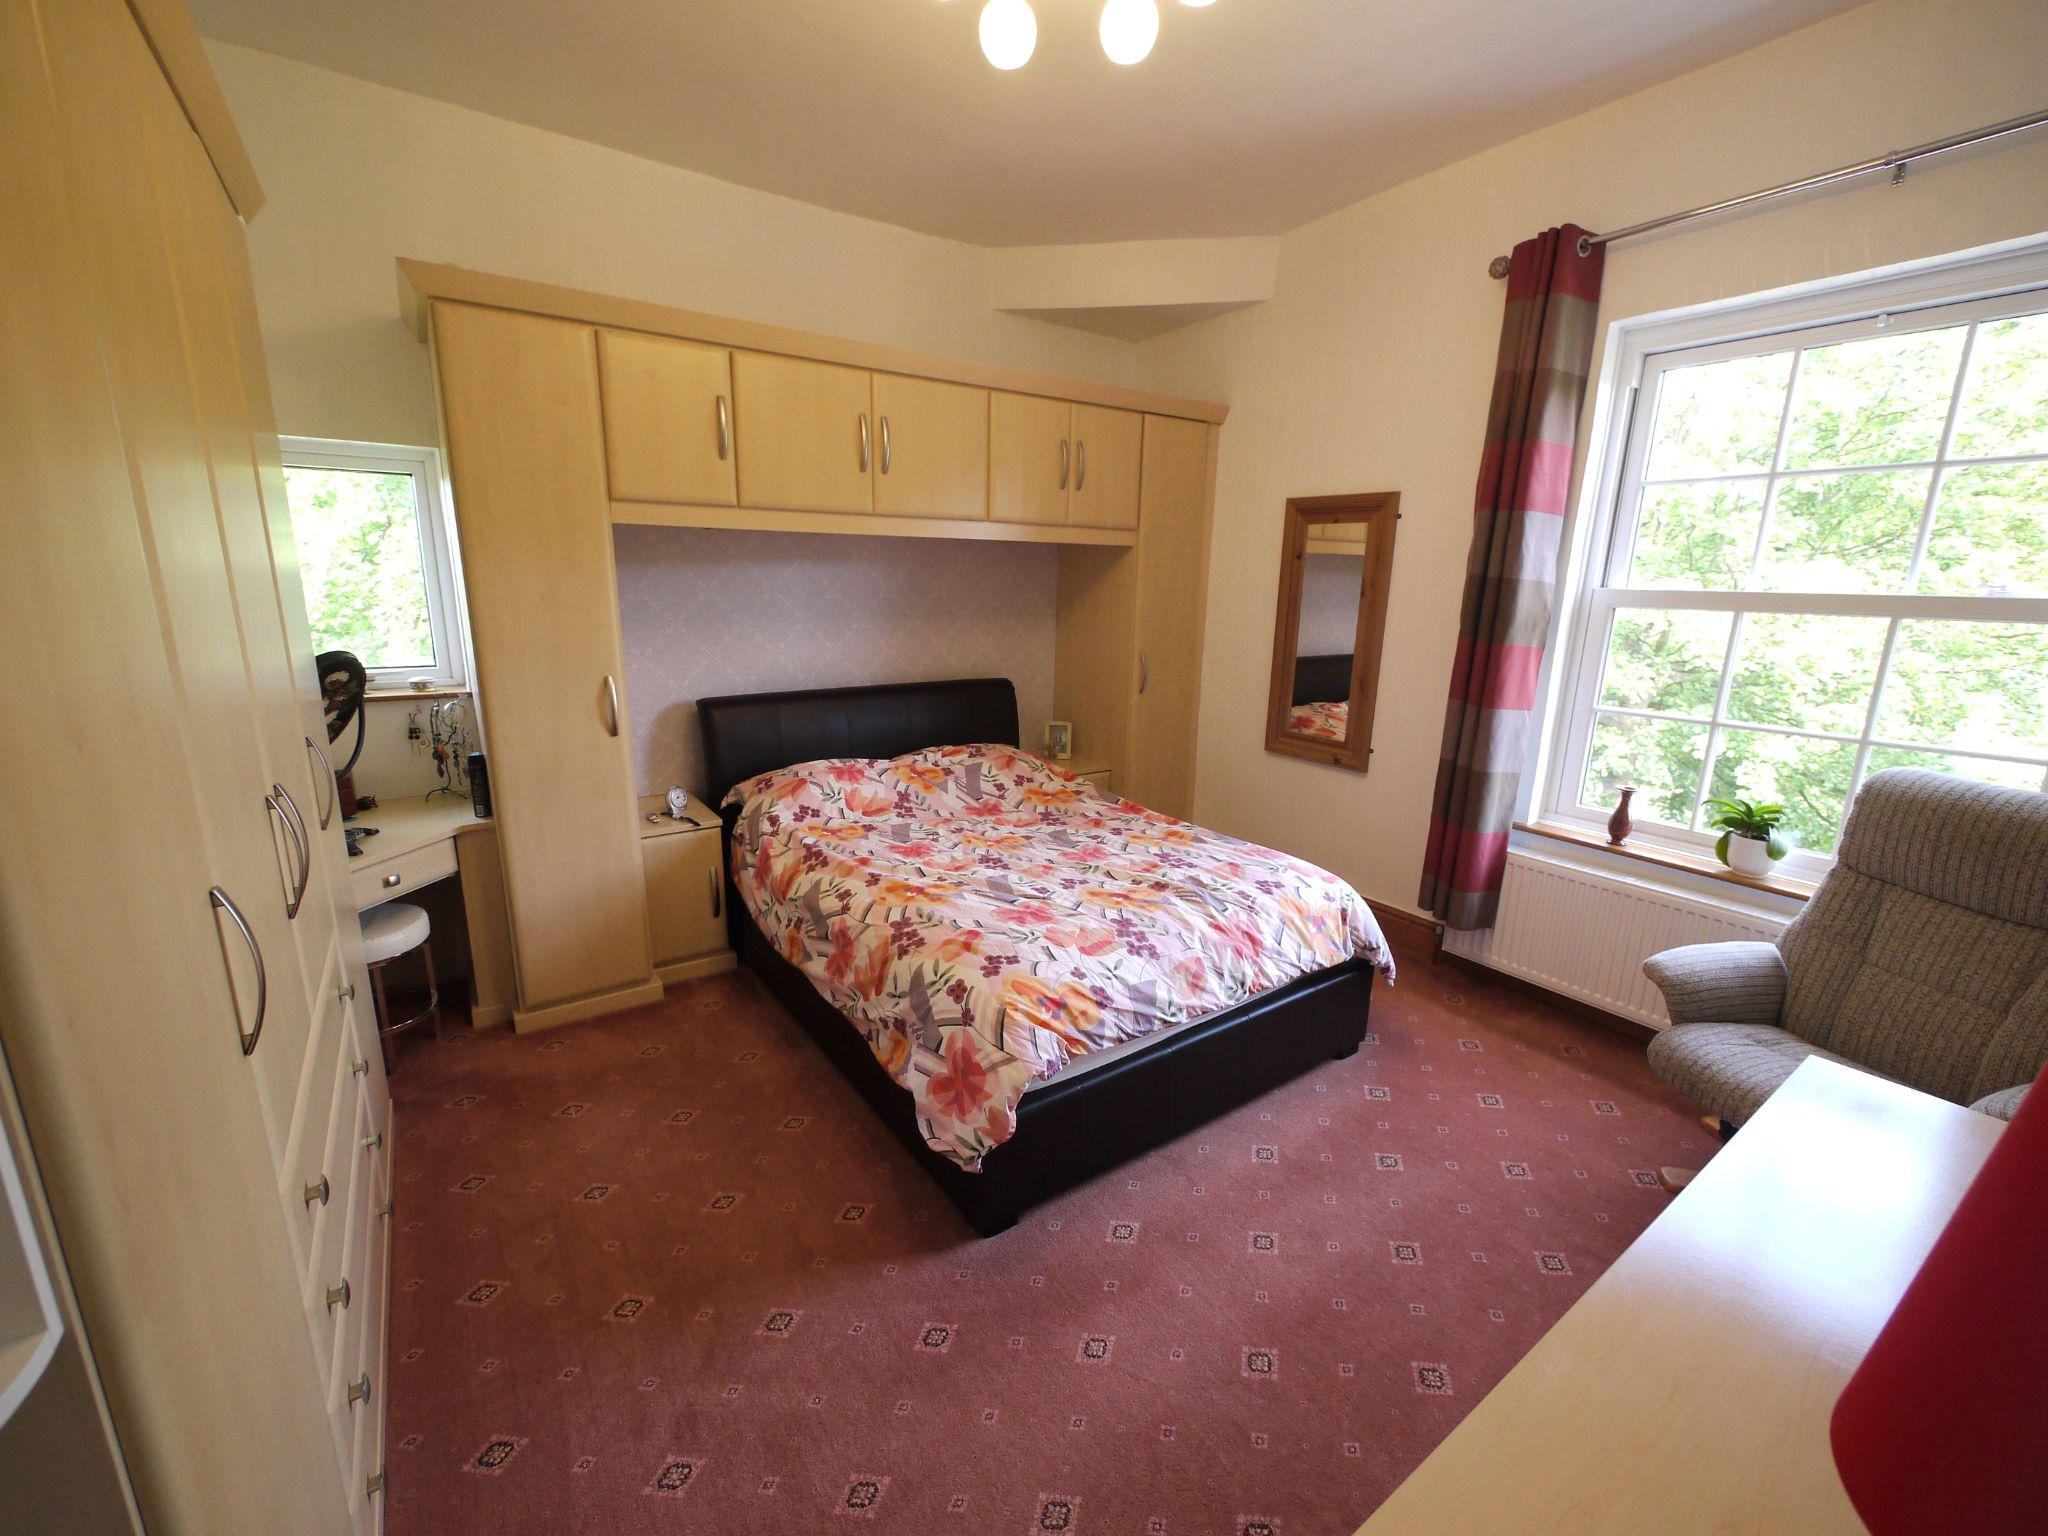 2 bedroom end terraced house SSTC in Brighouse - Bedroom 1.